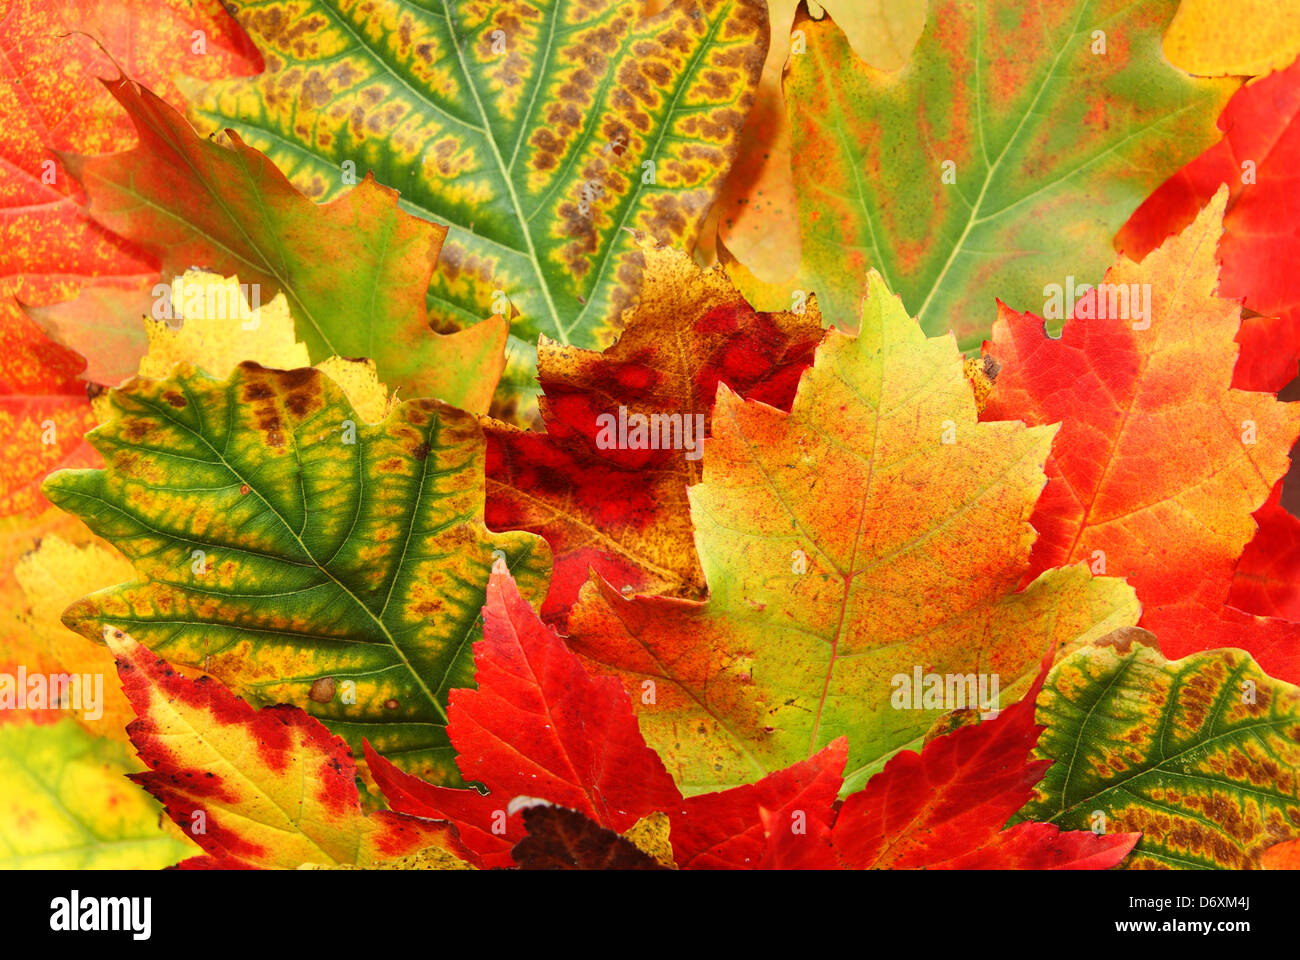 coloured fresh leaf of autumn as background - Stock Image